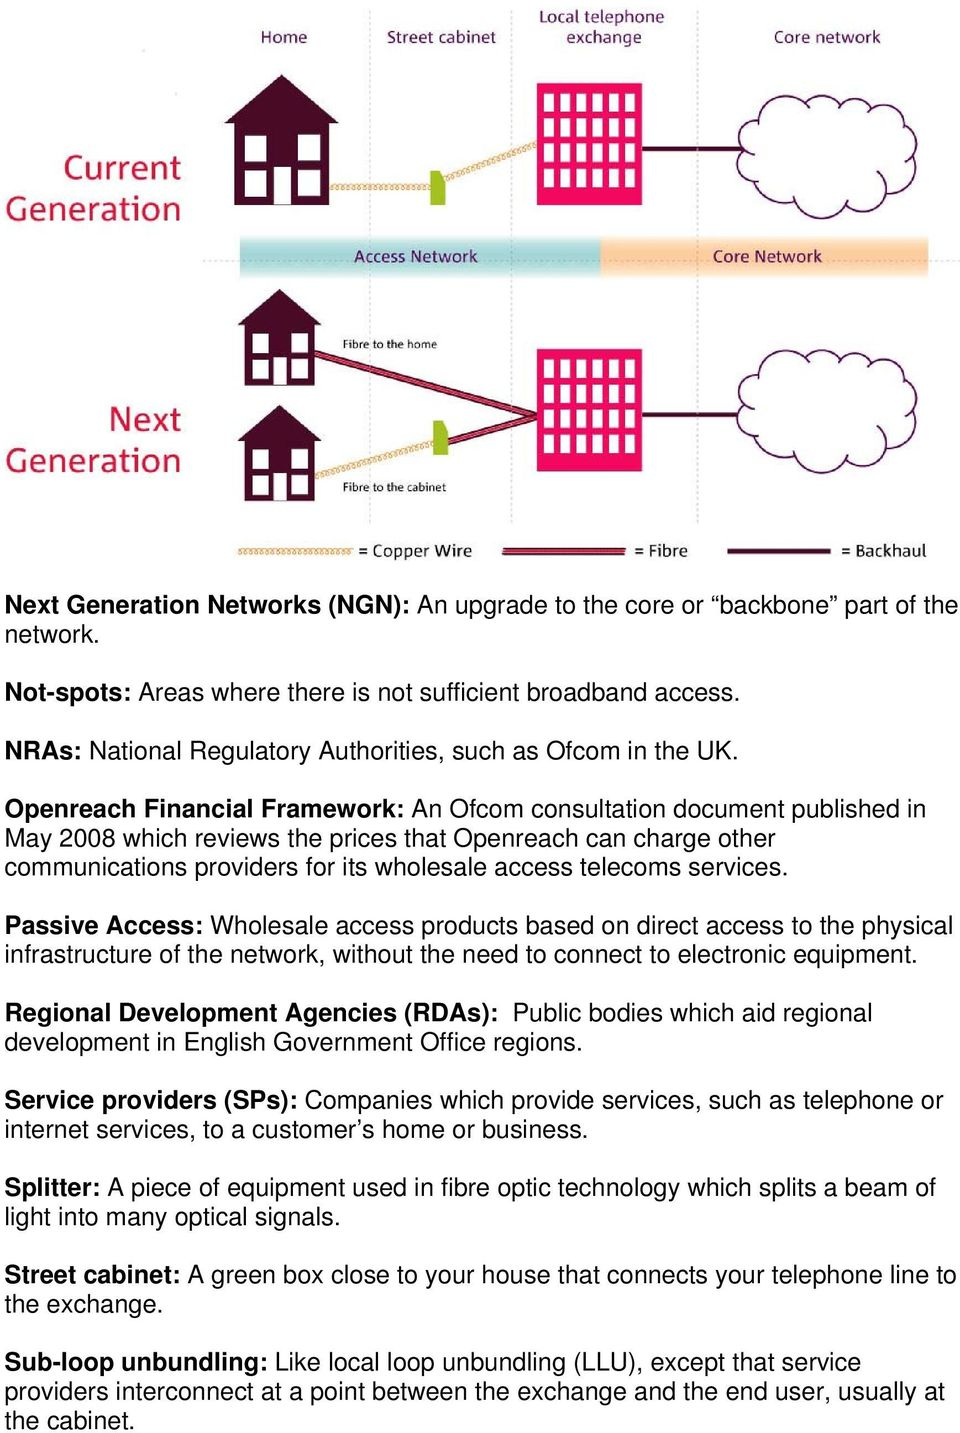 Openreach Financial Framework: An Ofcom consultation document published in May 2008 which reviews the prices that Openreach can charge other communications providers for its wholesale access telecoms